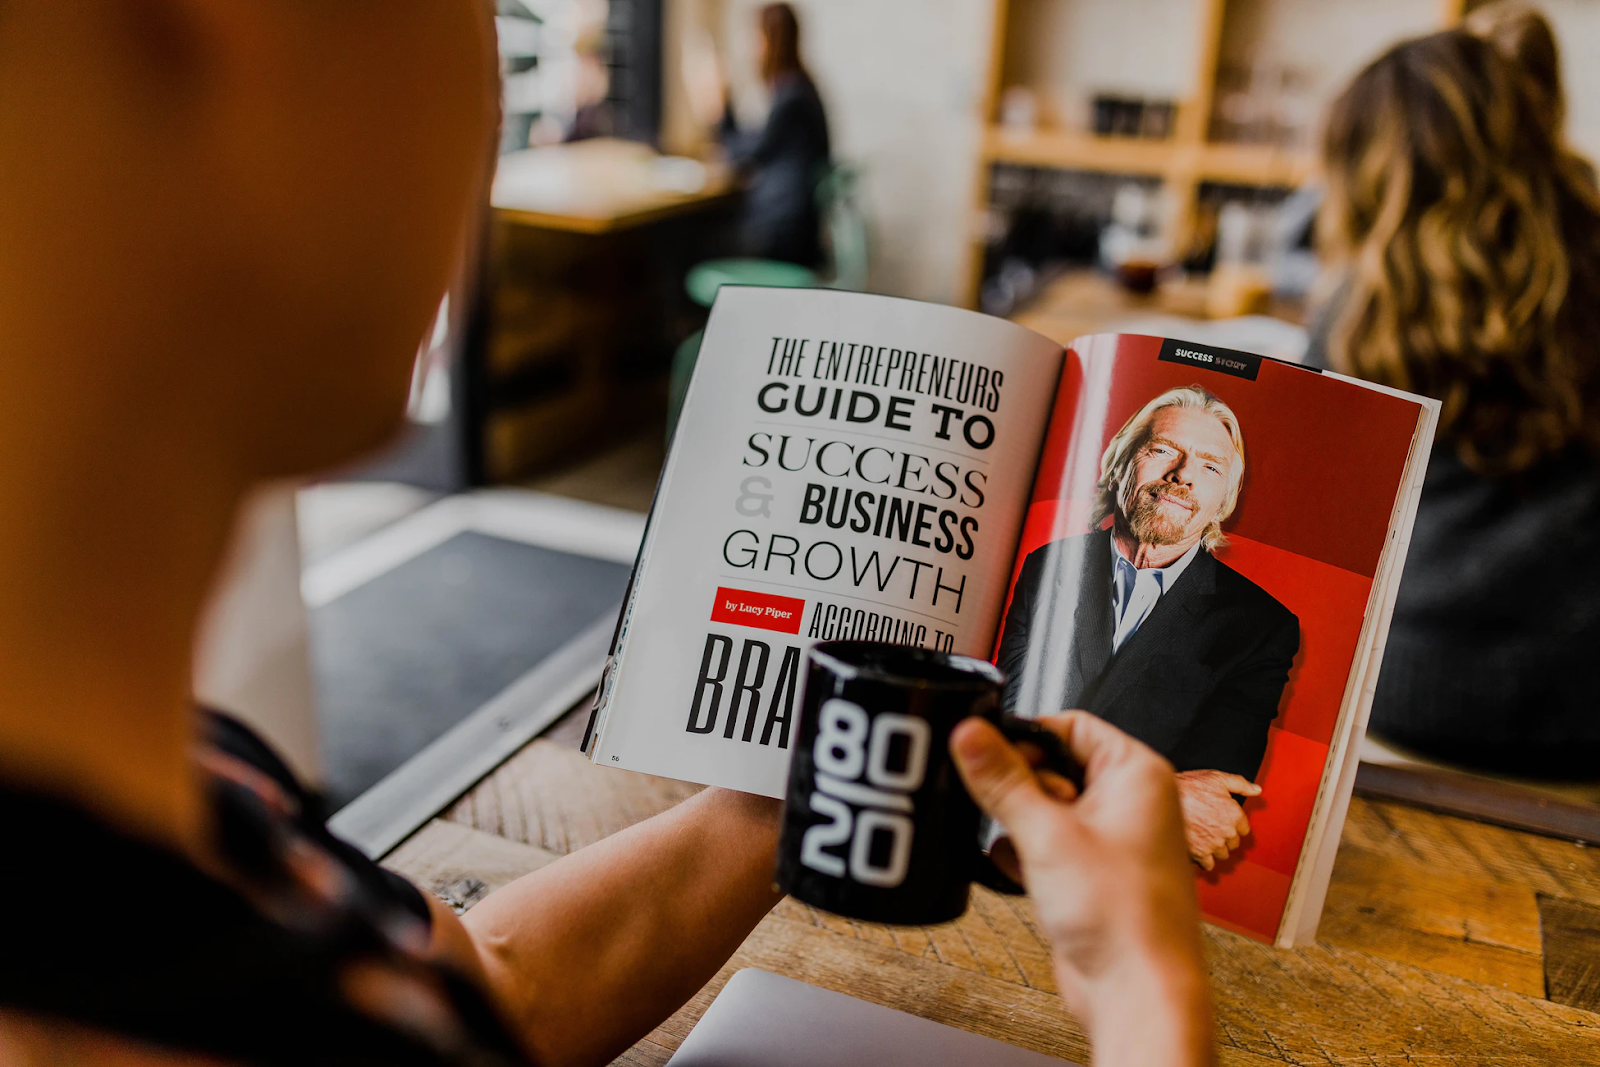 Ecommerce Business courses for beginners